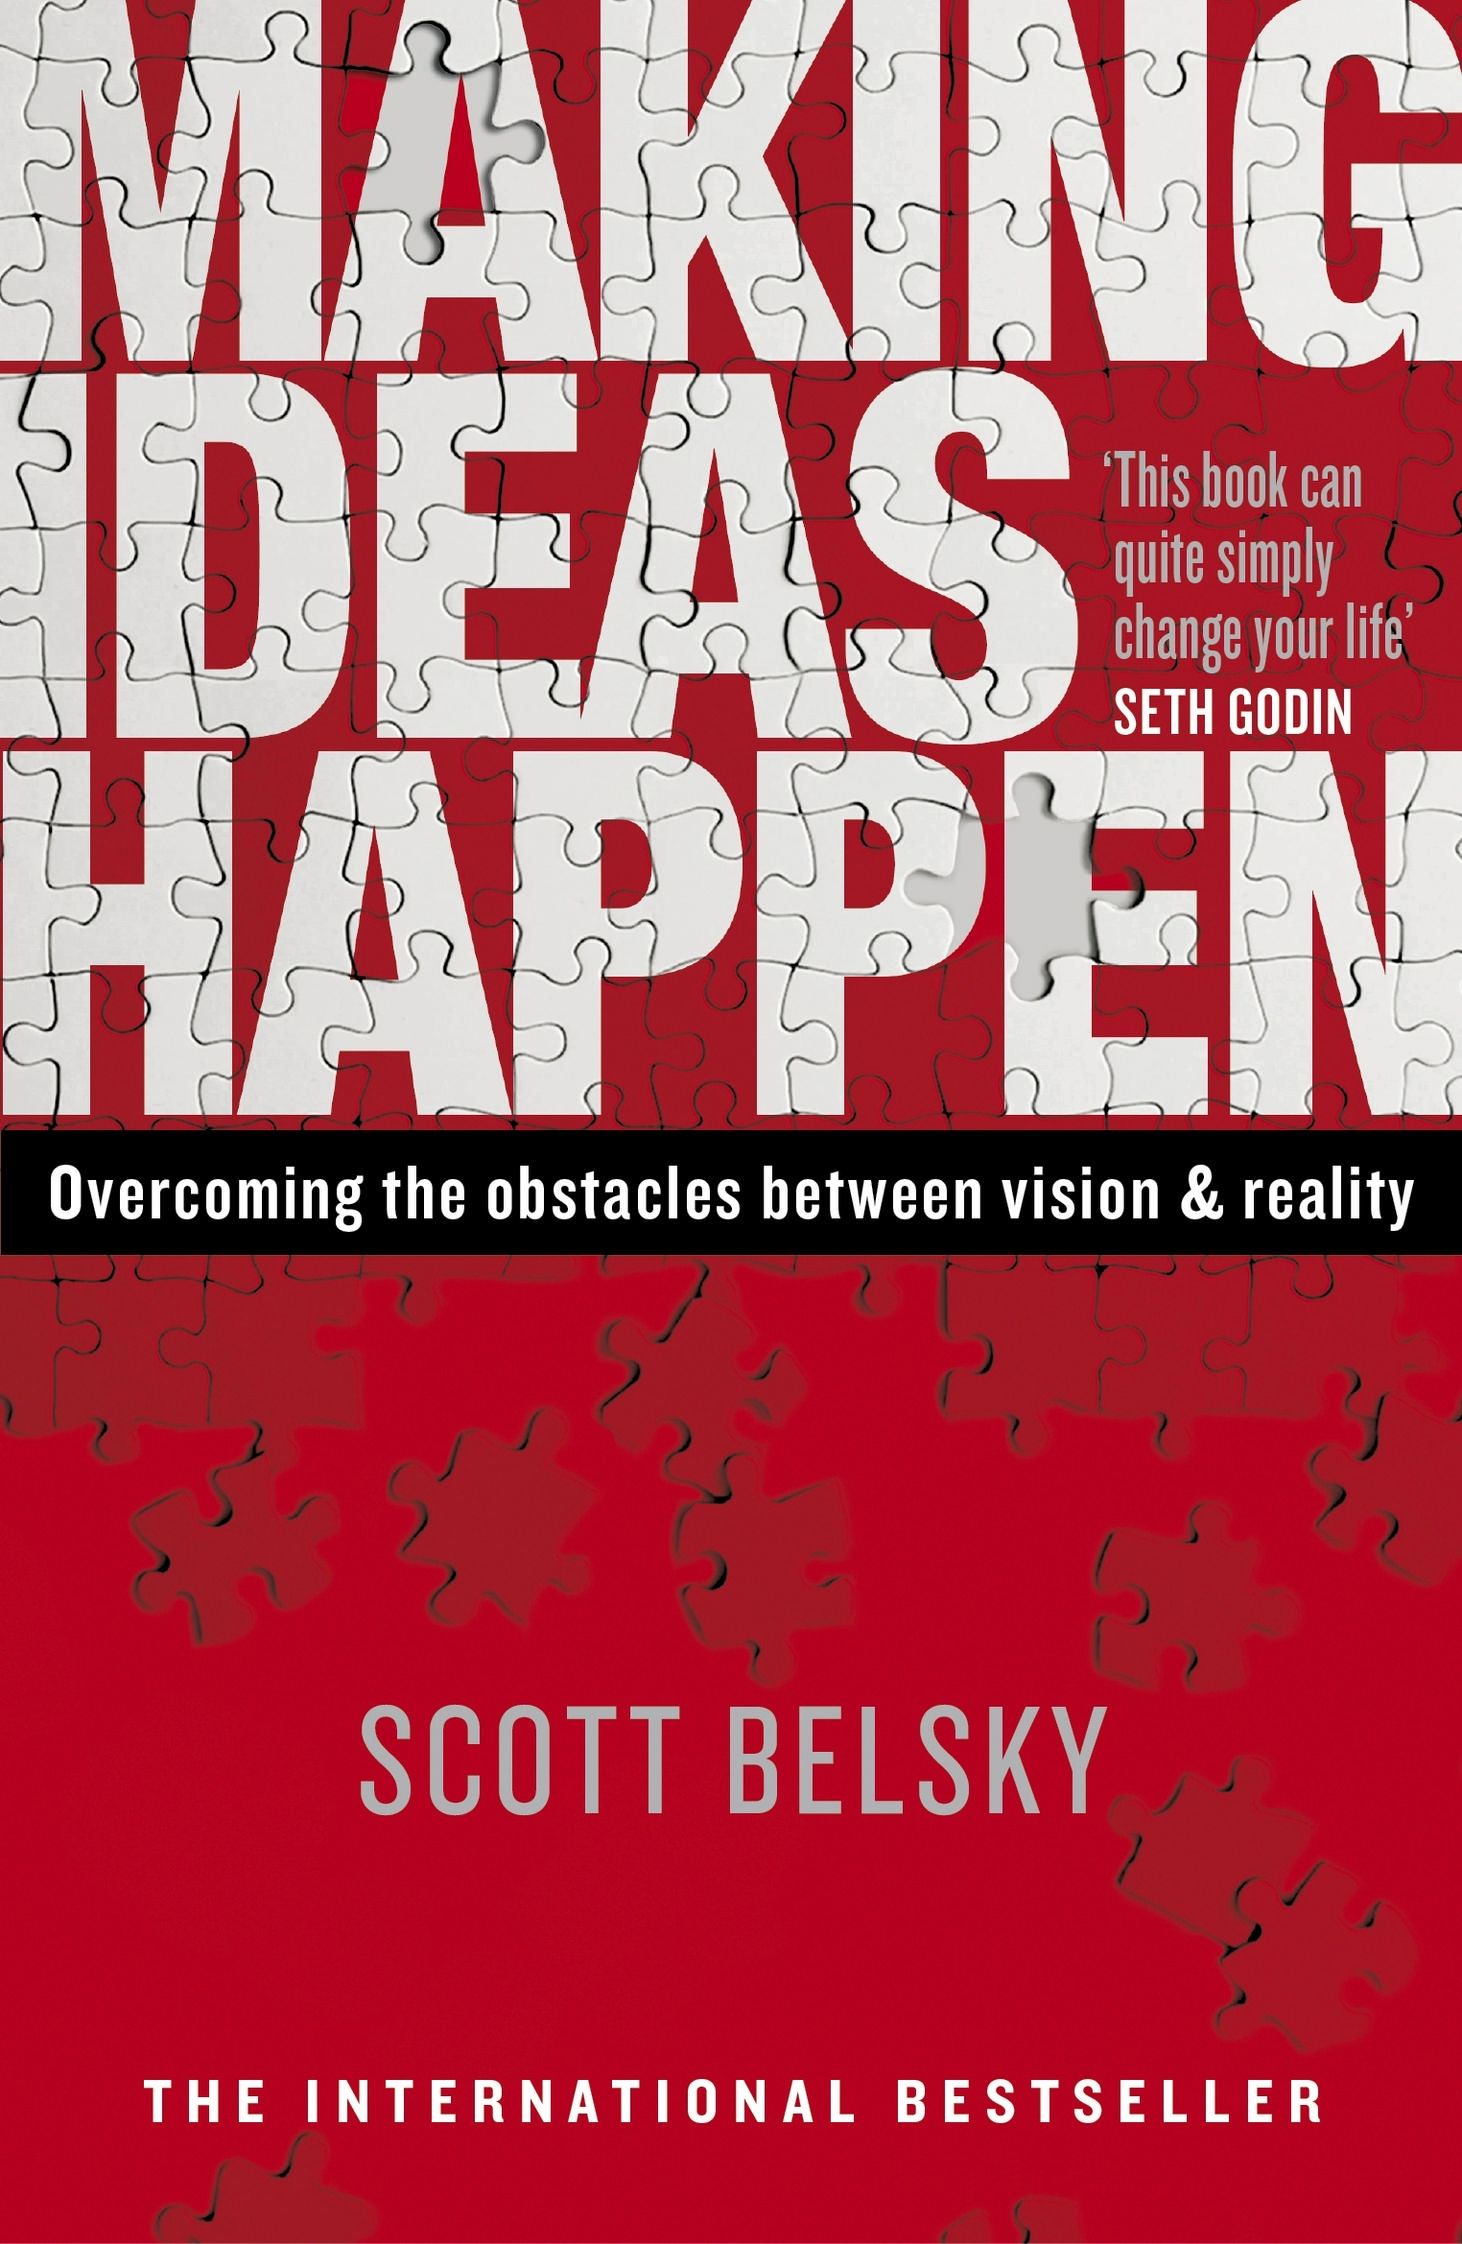 http://99u.com/book/making-ideas-happen-2